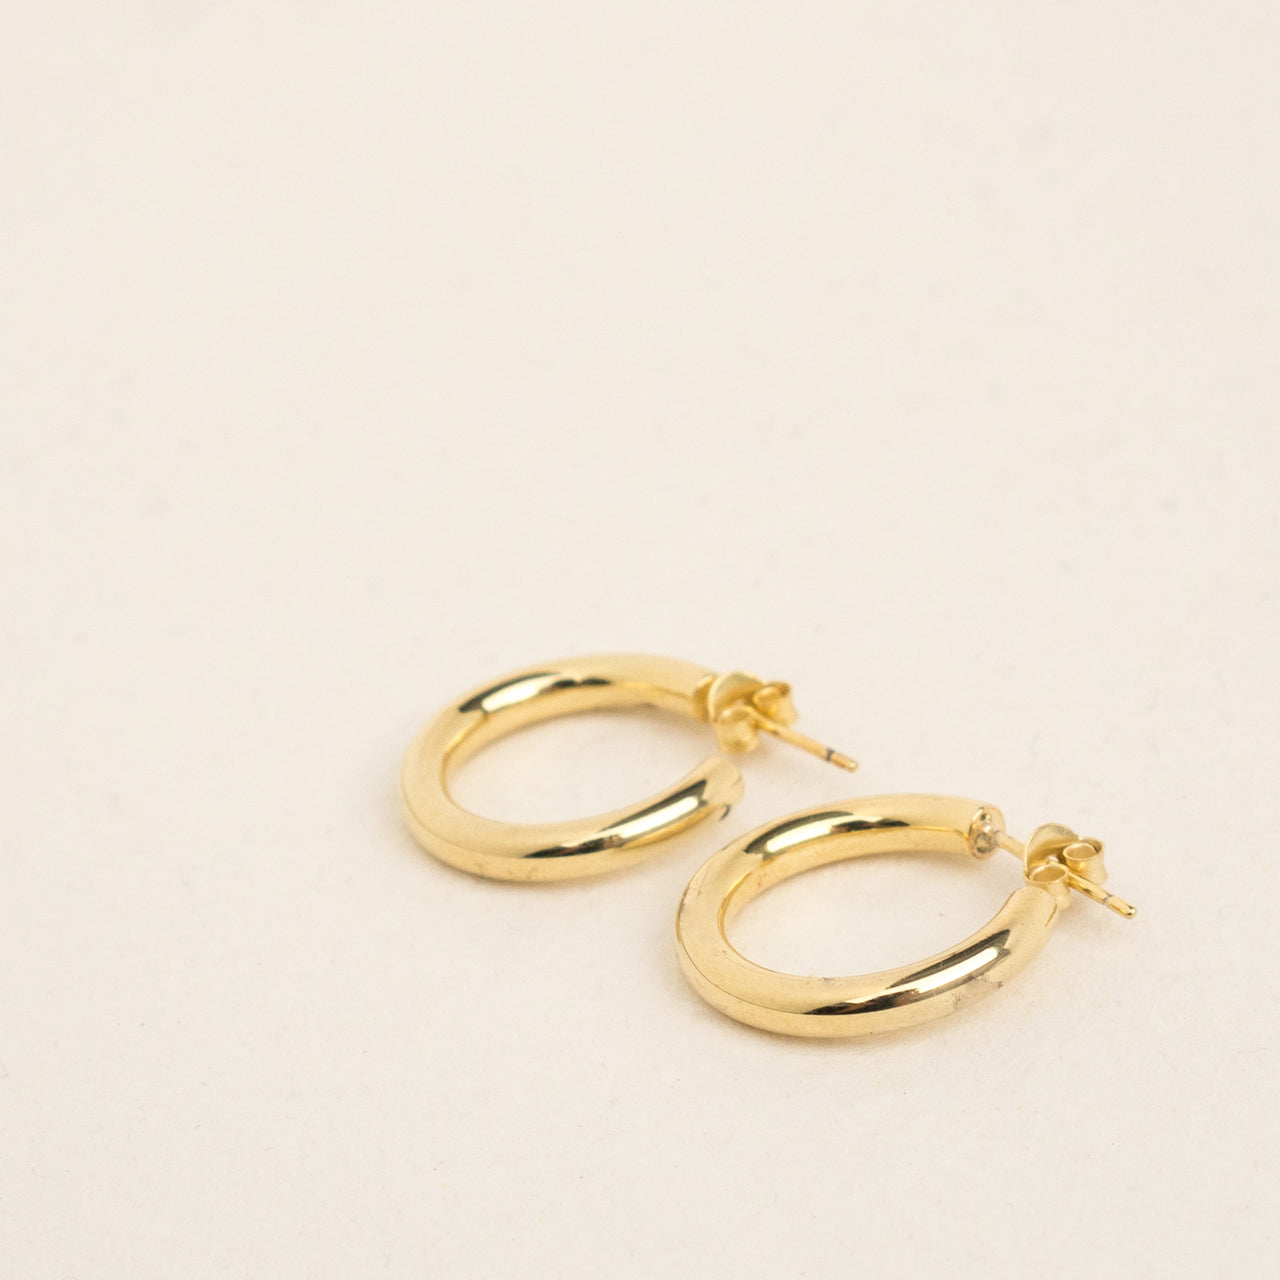 Machete 14K Gold Mini Hoop Earrings